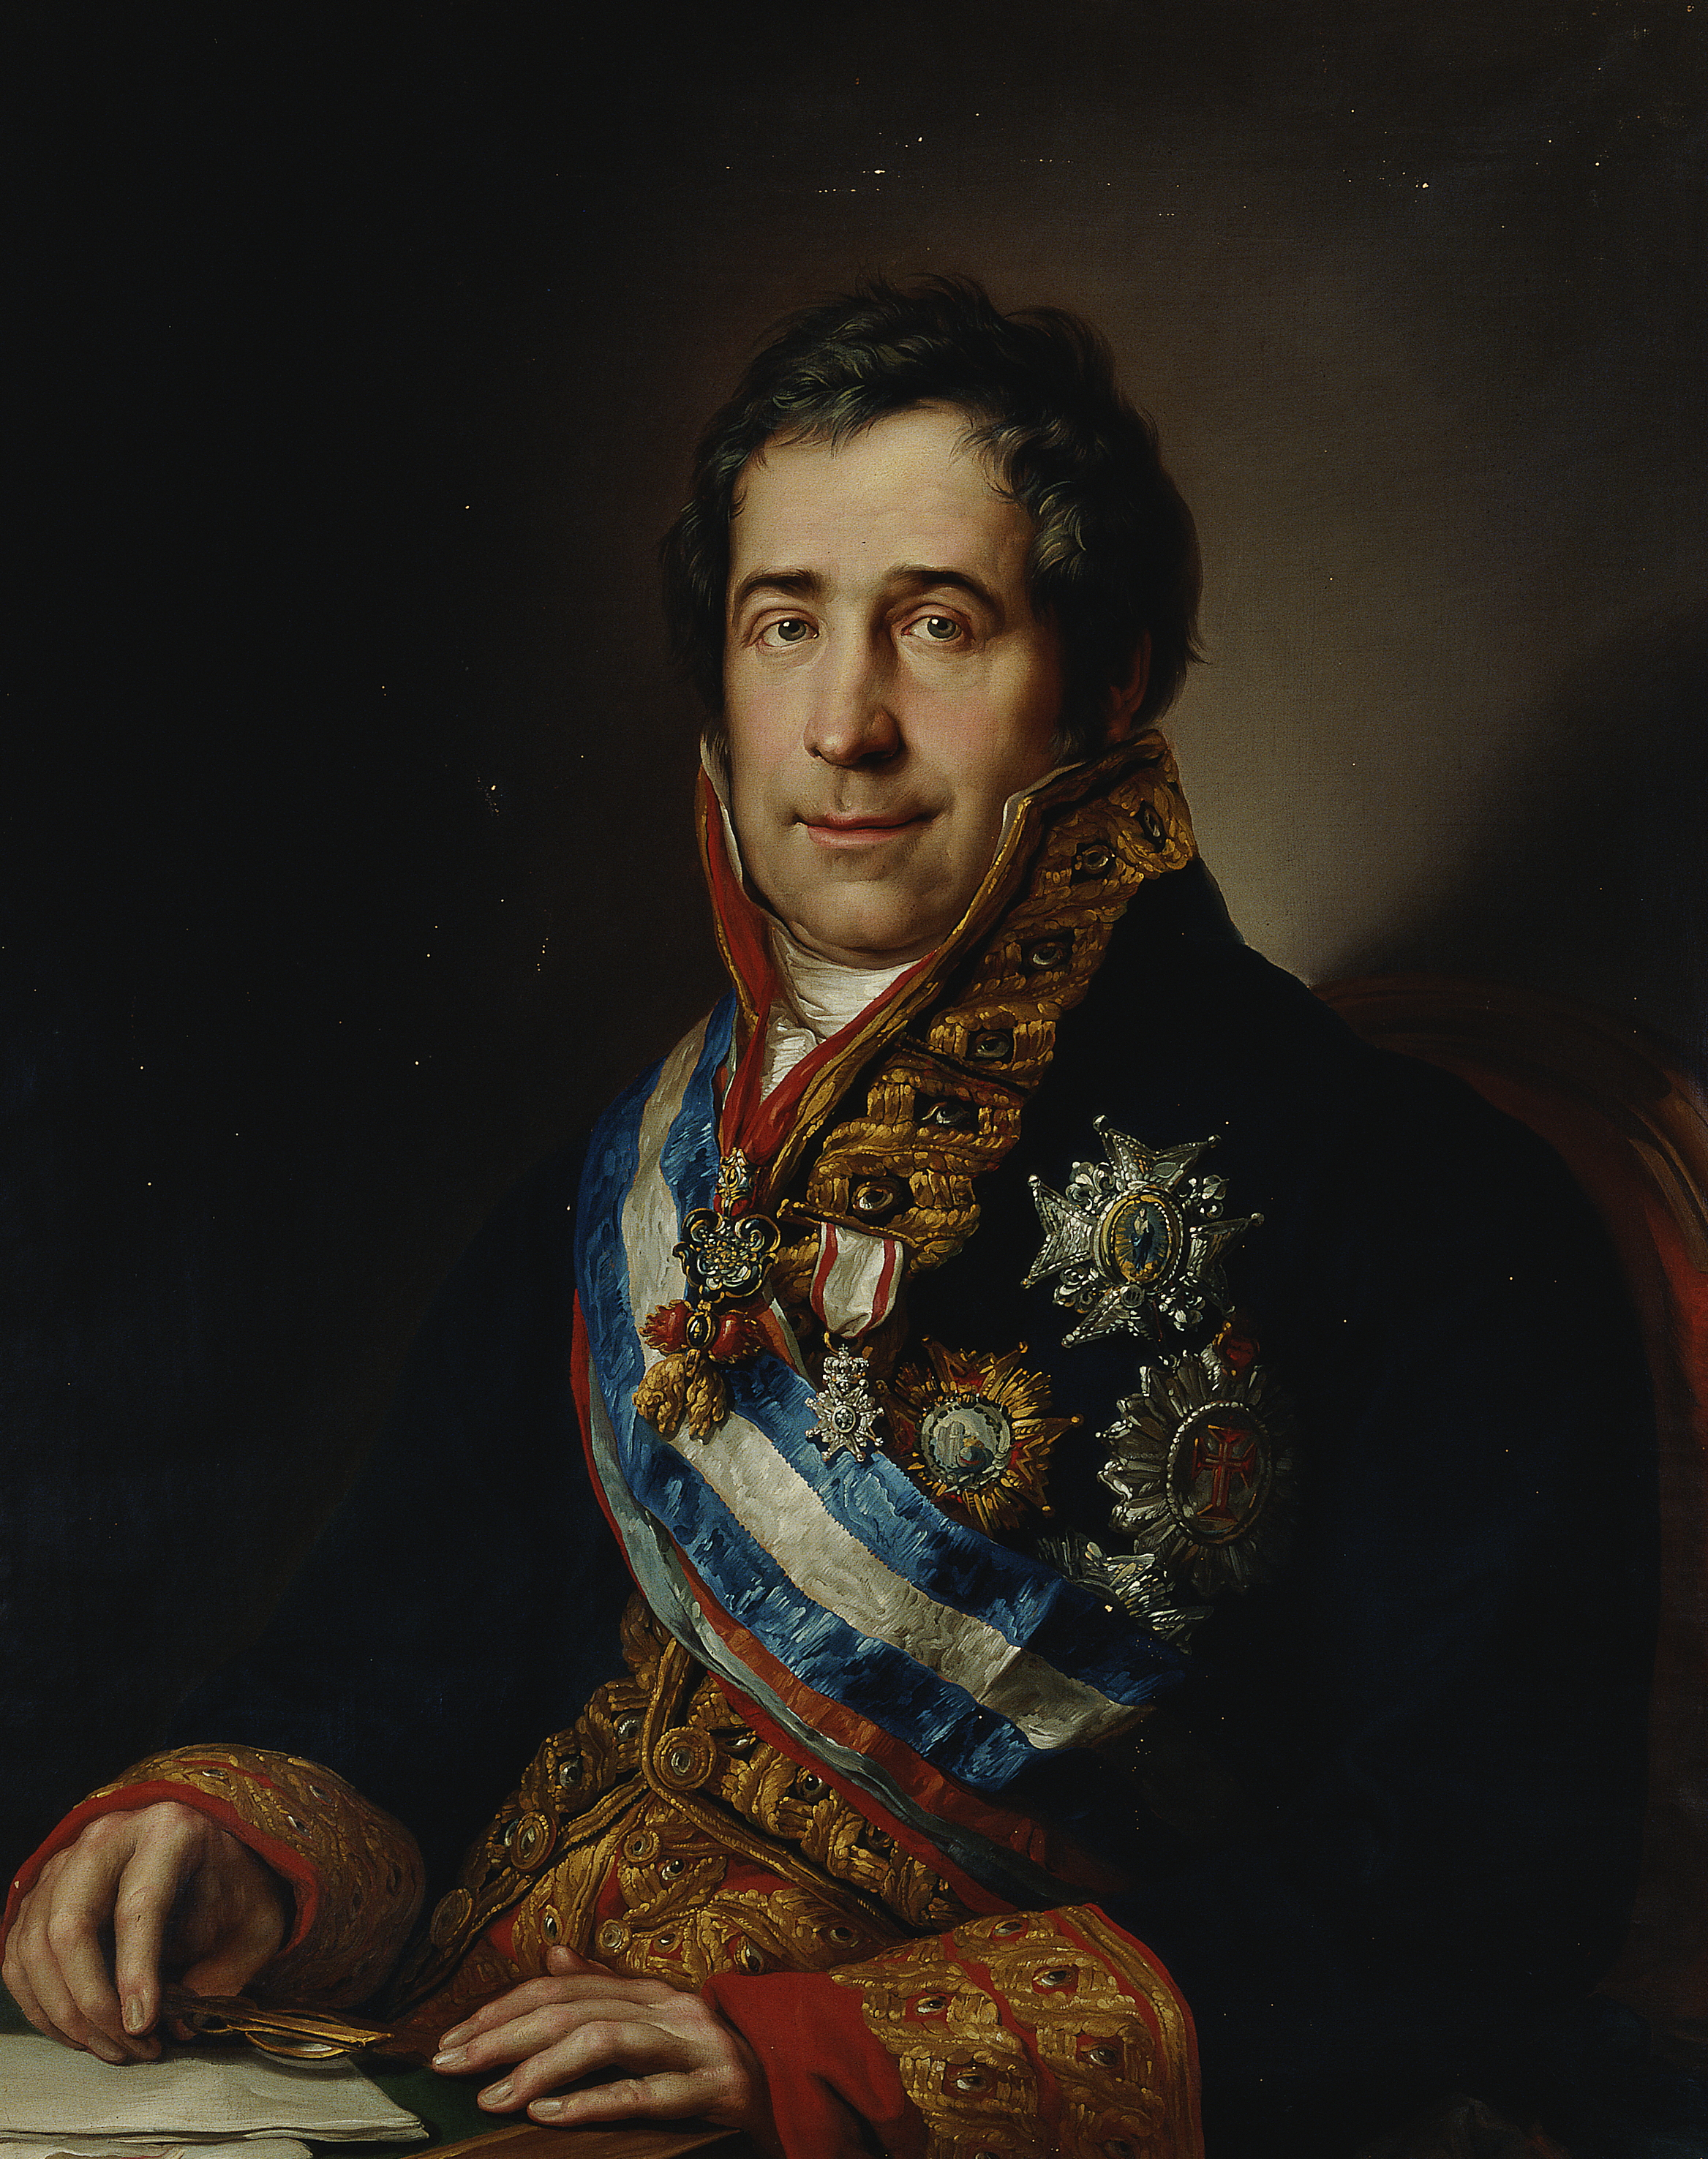 Francisco Tadeo Calomarde